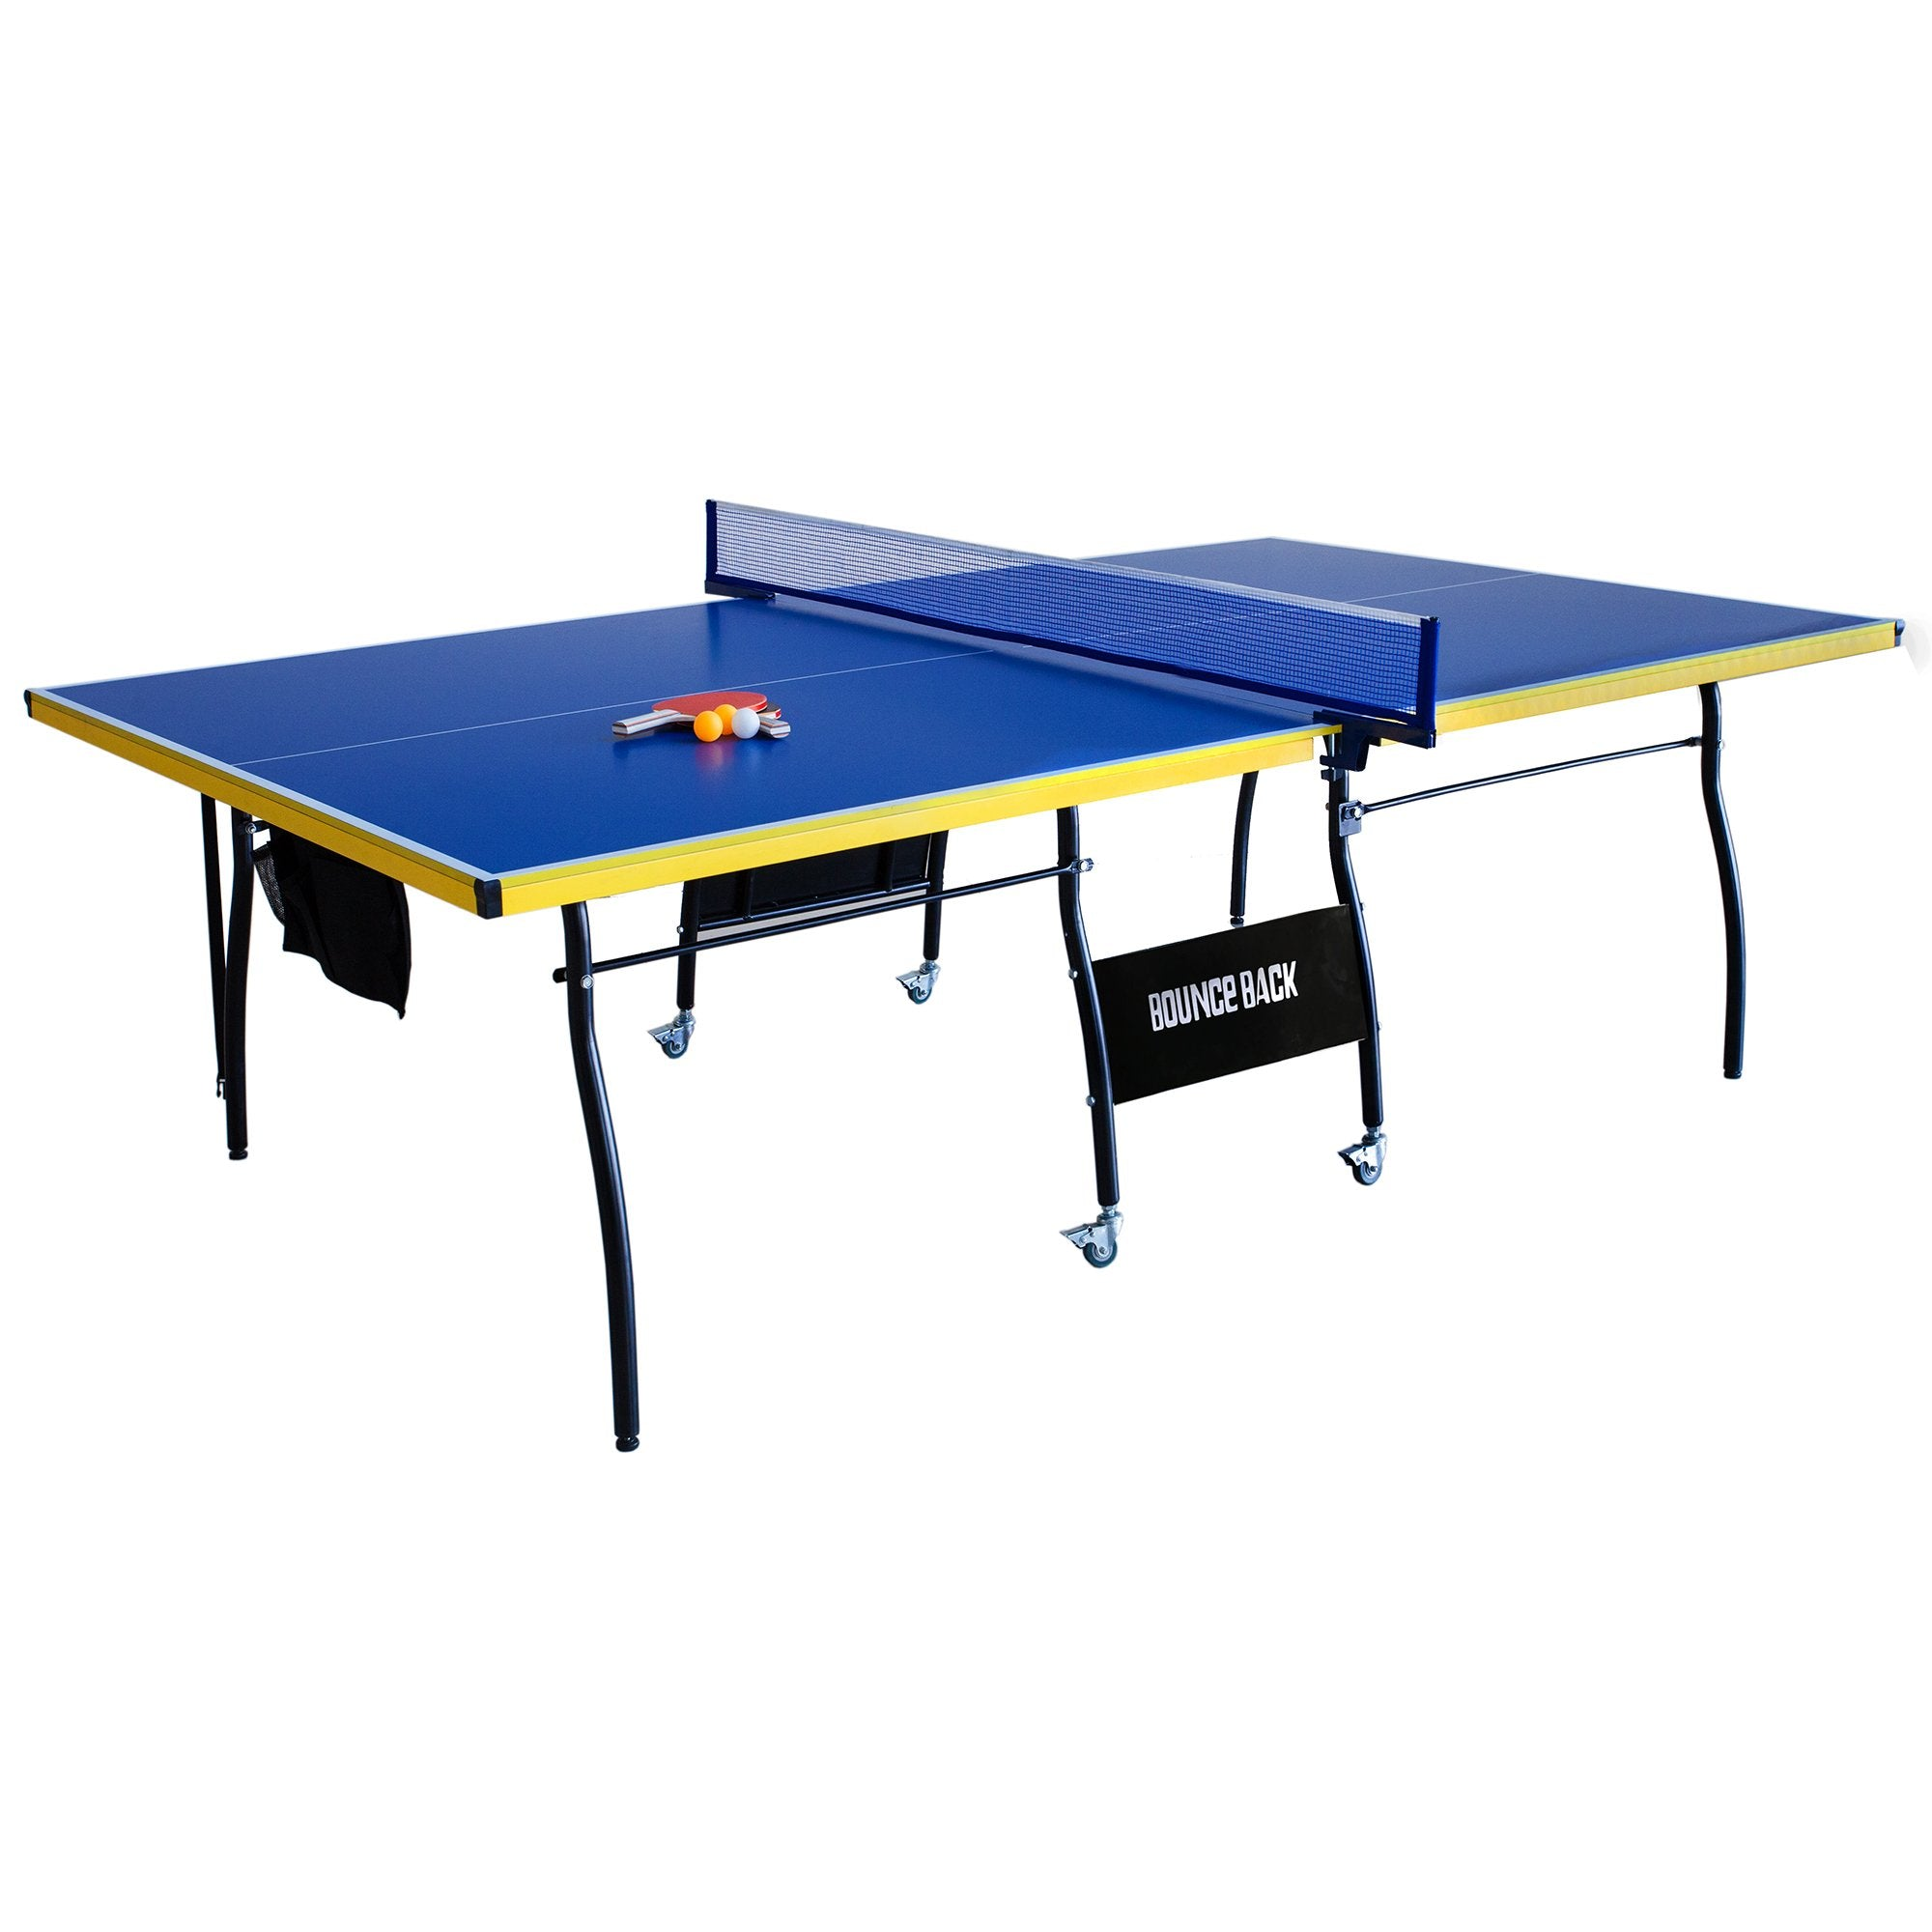 Hathaway Bounce Back 9ft Folding Ping Pong Table - Gaming Blaze